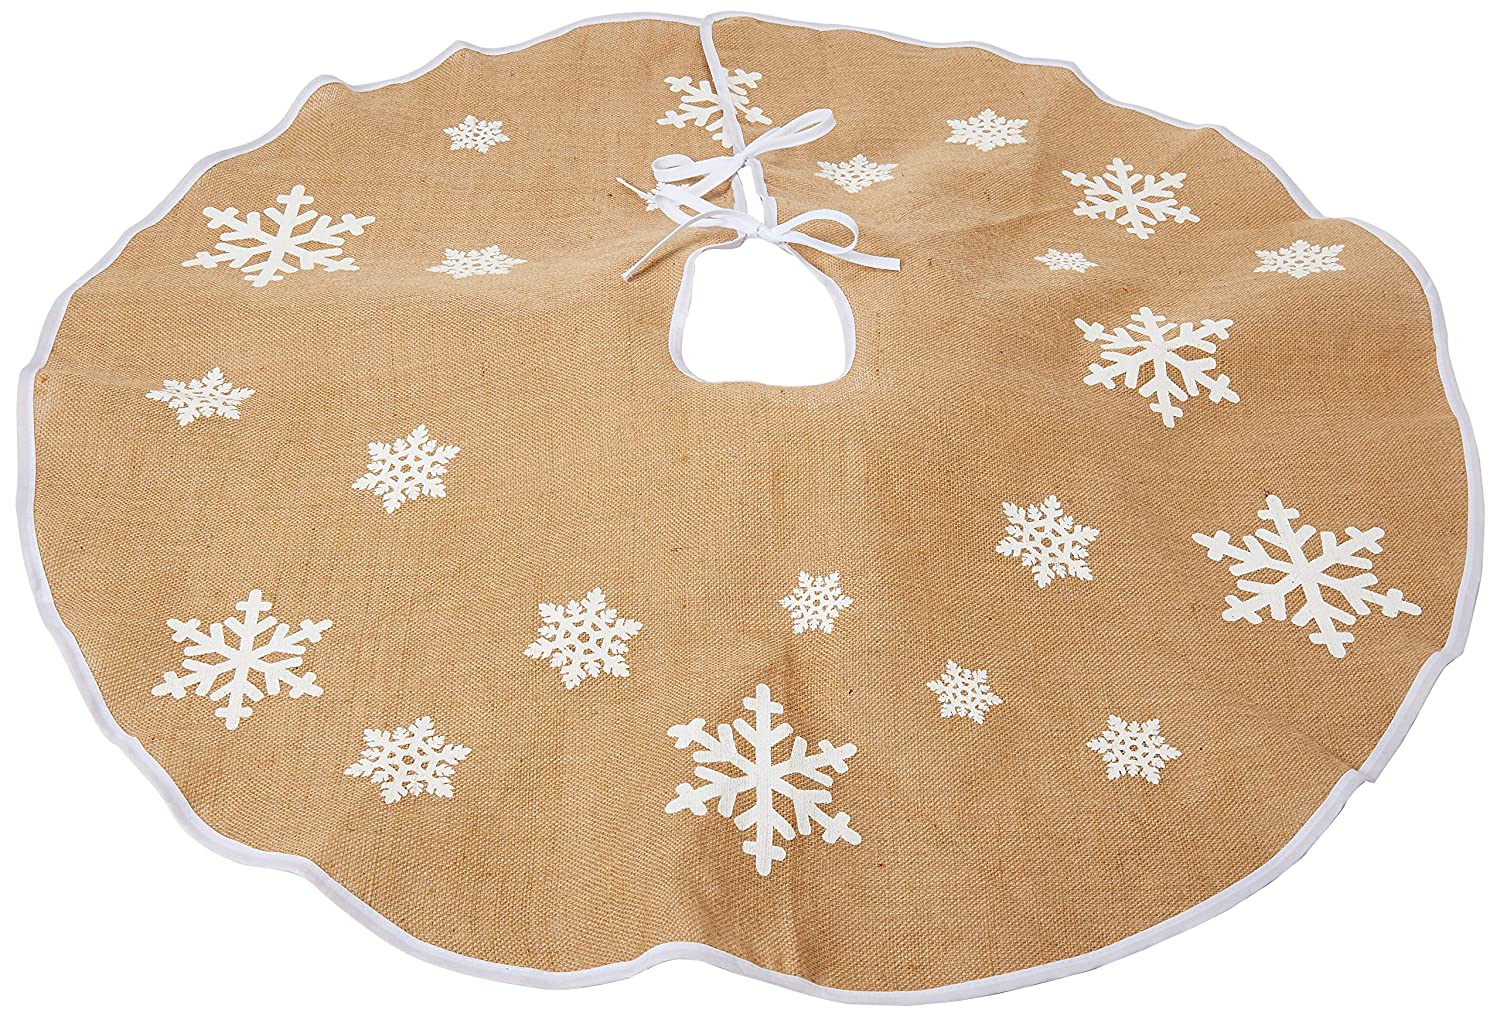 Aytai Christmas Tree Skirt 48 inches Xmas Burlap Tree Skirt White Snowflake Printed Christmas Decorations Indoor Outdoor